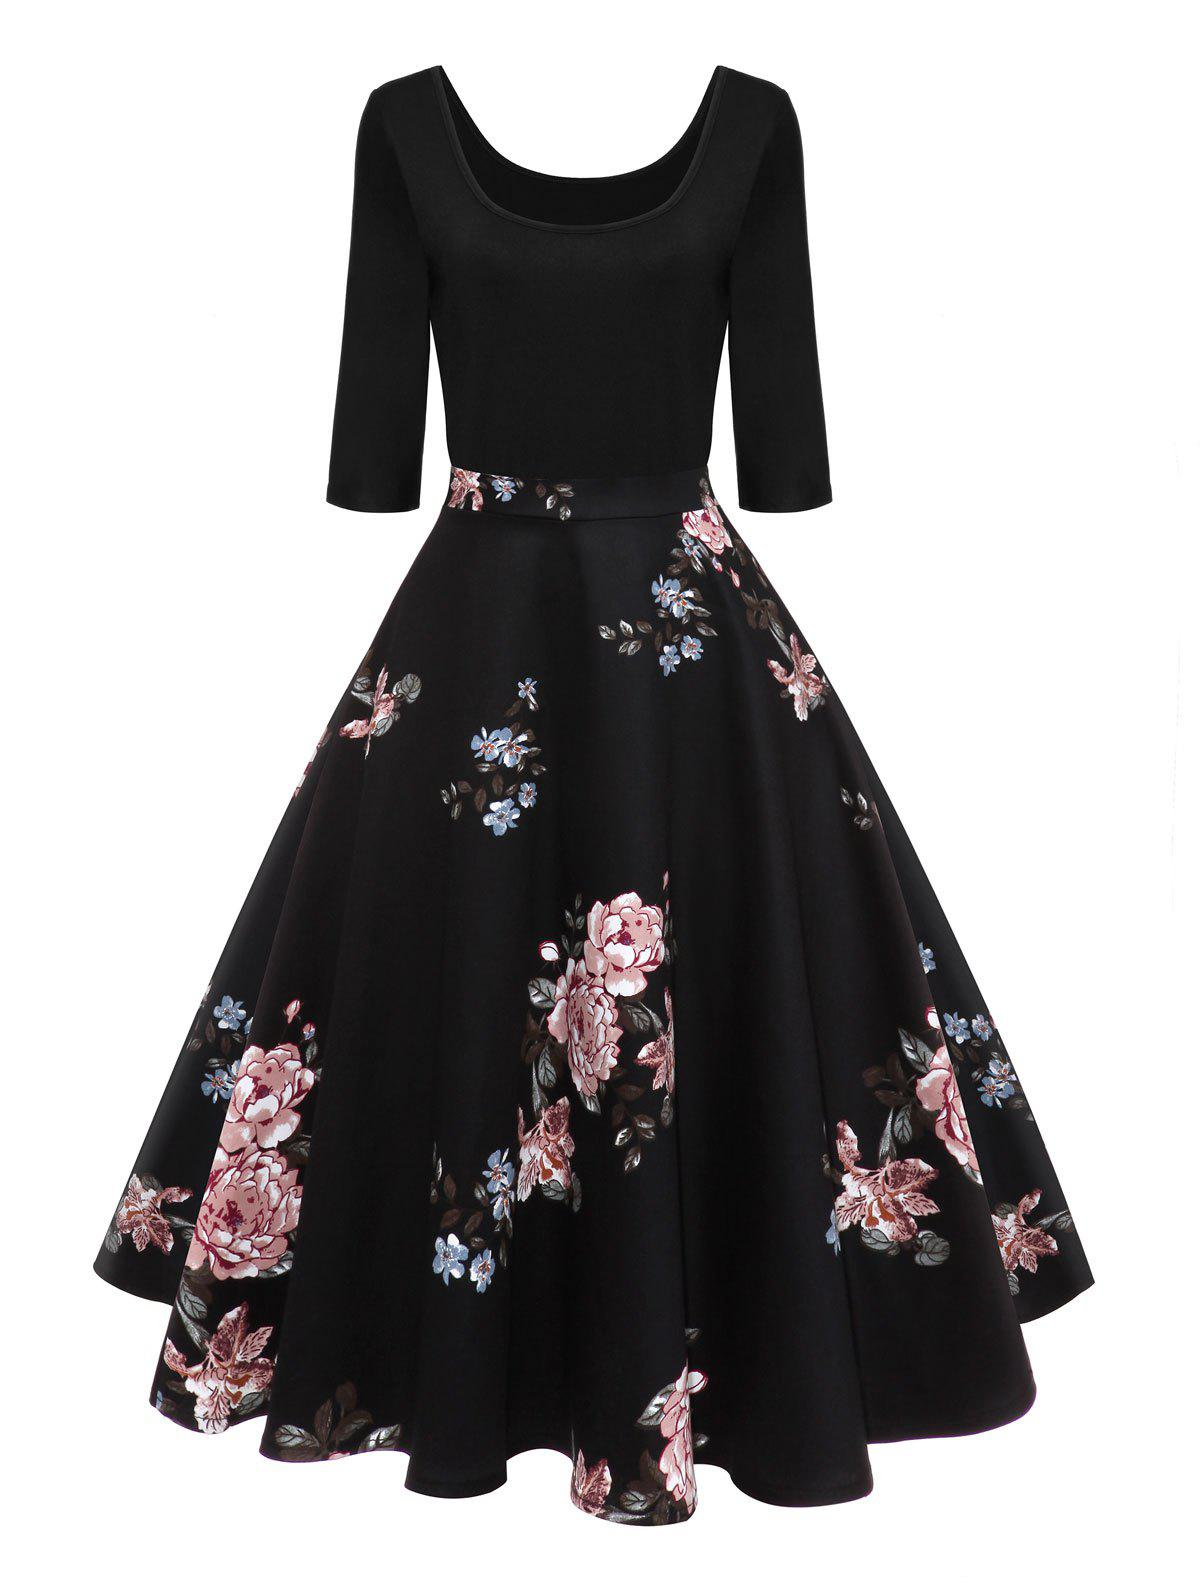 Best Retro U Neck Floral Pin Up Dress